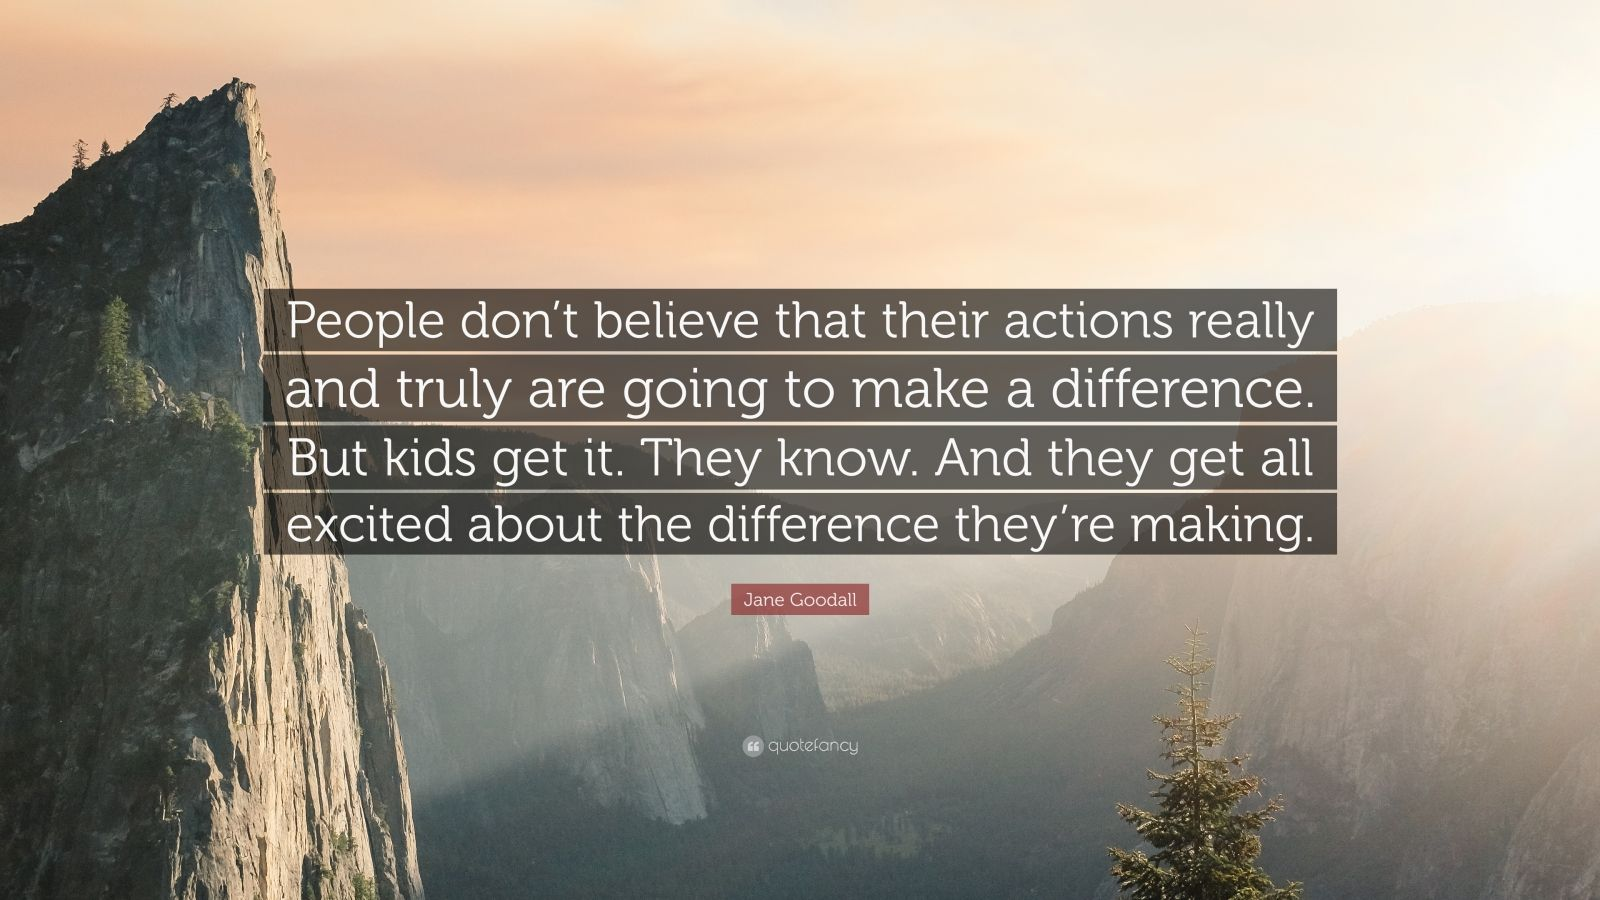 """Jane Goodall Quote: """"People don't believe that their actions really and truly are going to make a difference. But kids get it. They know. And they get all excited about the difference they're making."""""""